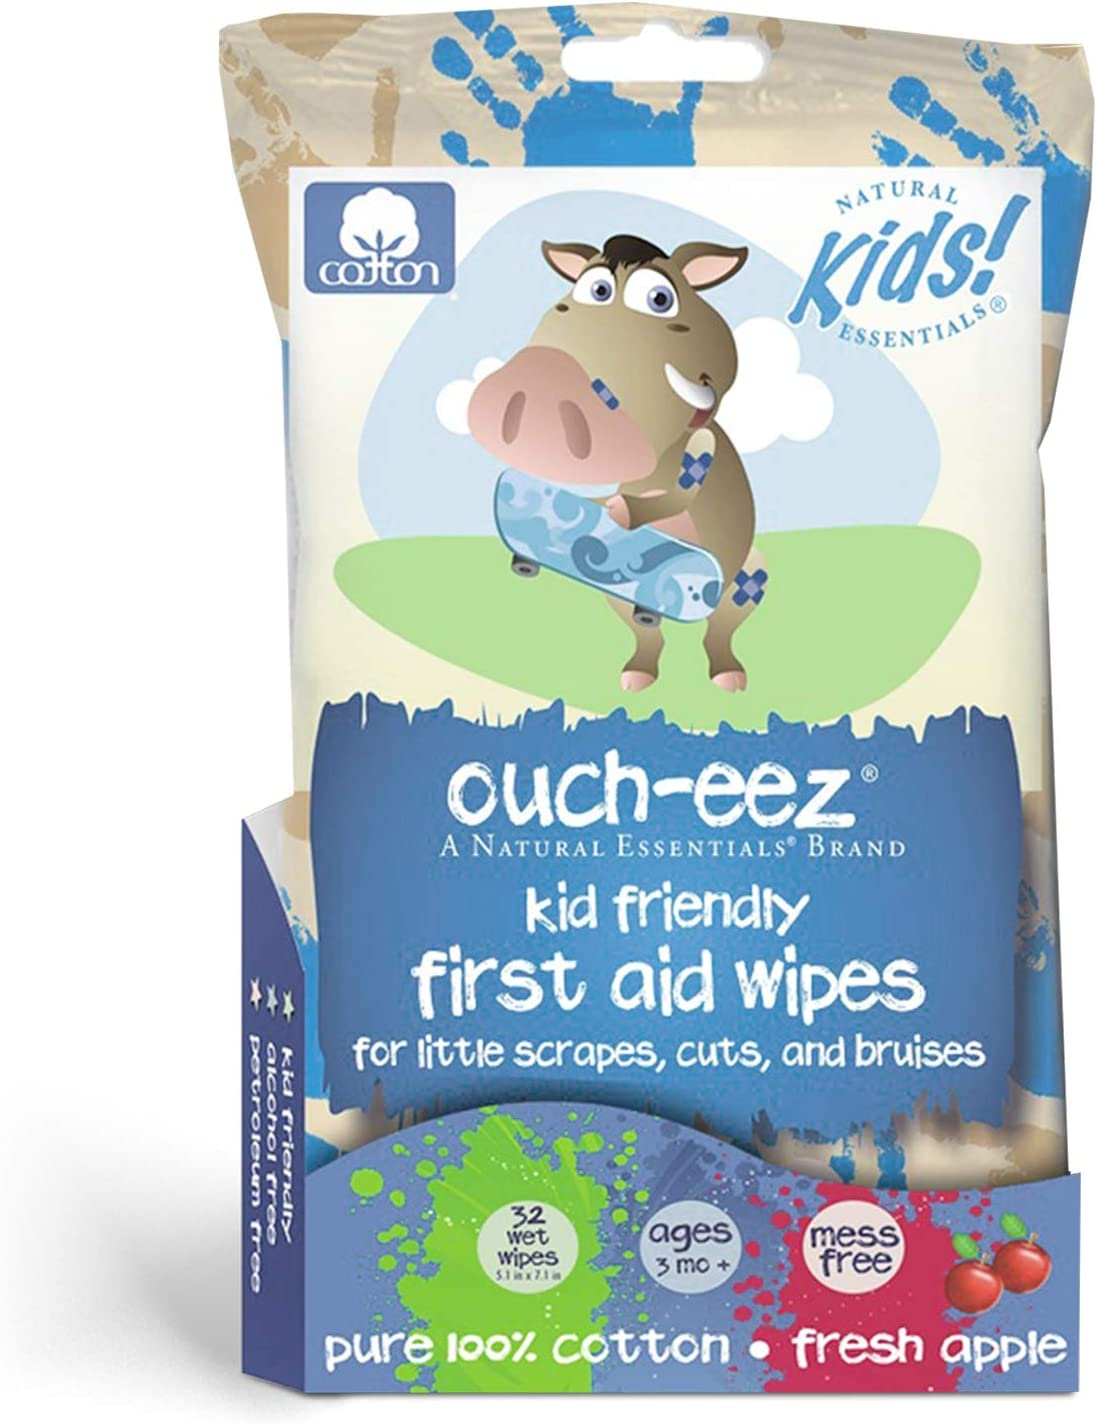 Natural Essentials - Ouch-eez, Kid Friendly First Aid 100% Cotton Wipes, 32-Count, Fresh Apple Scent For Little Scrapes, Cuts and Bruises, Ages 3 Months & Up